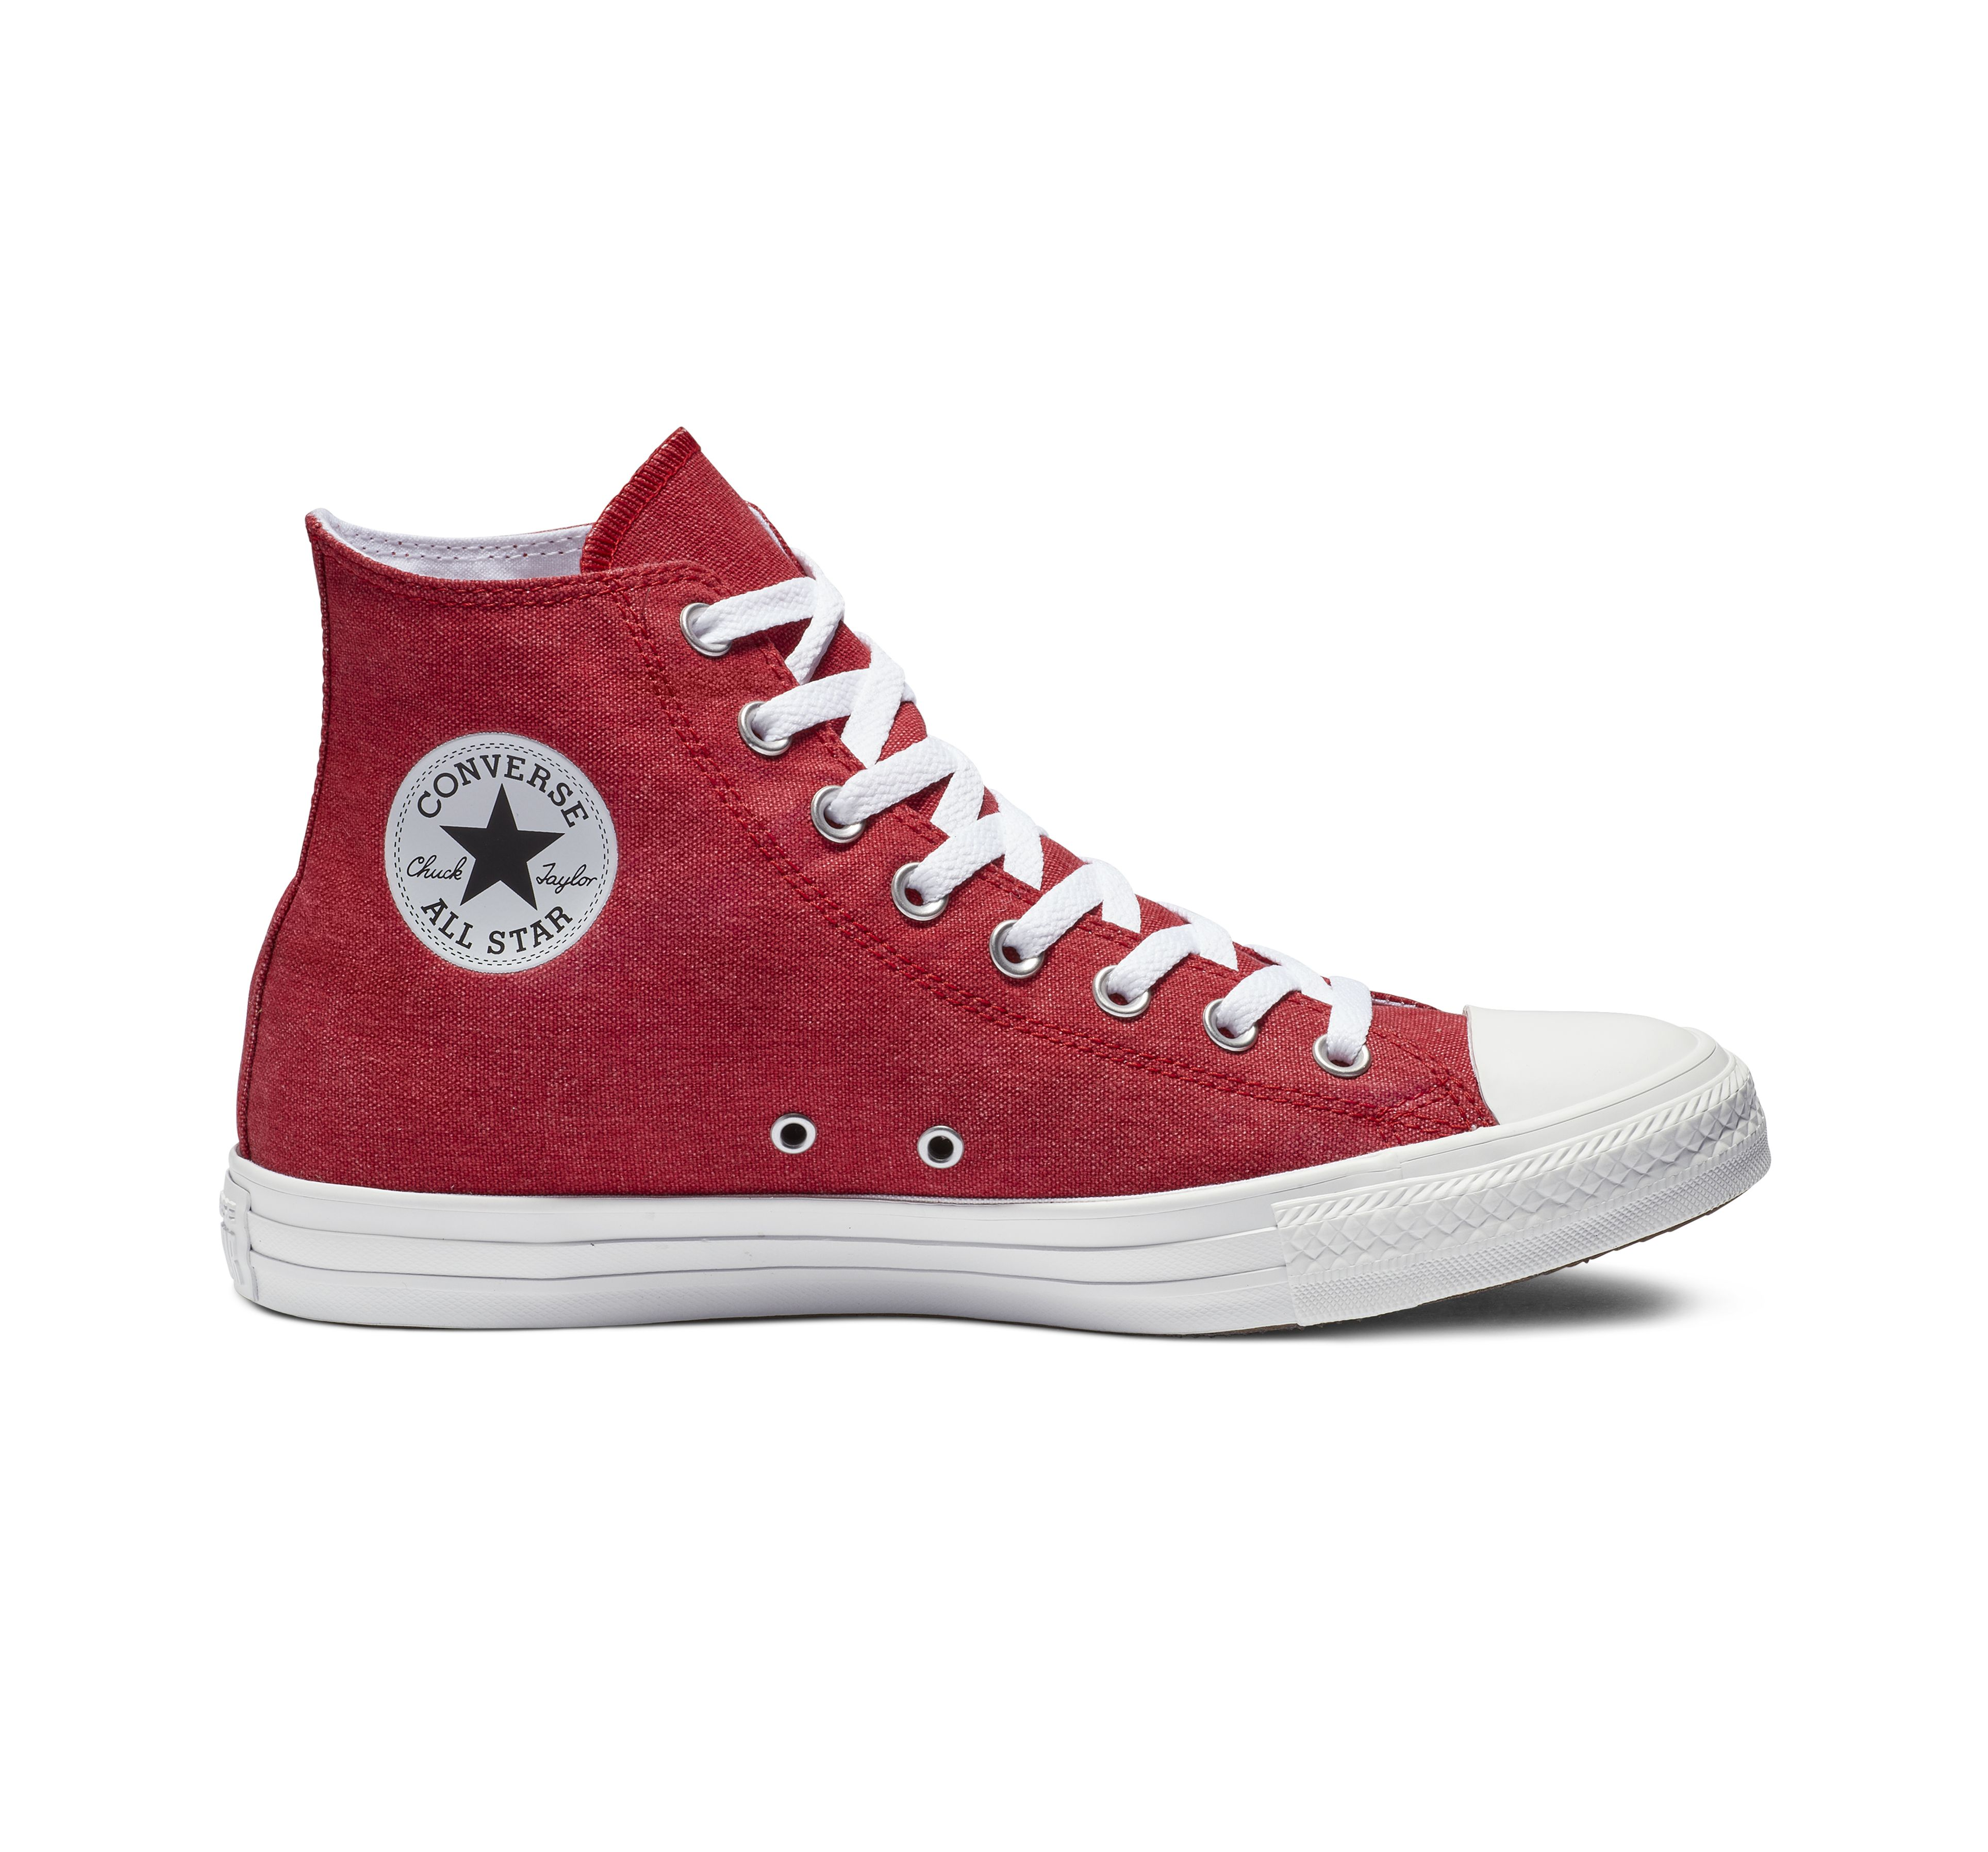 75f5c42482f9dc Chuck Taylor All Star Stone Wash High Top in 2019